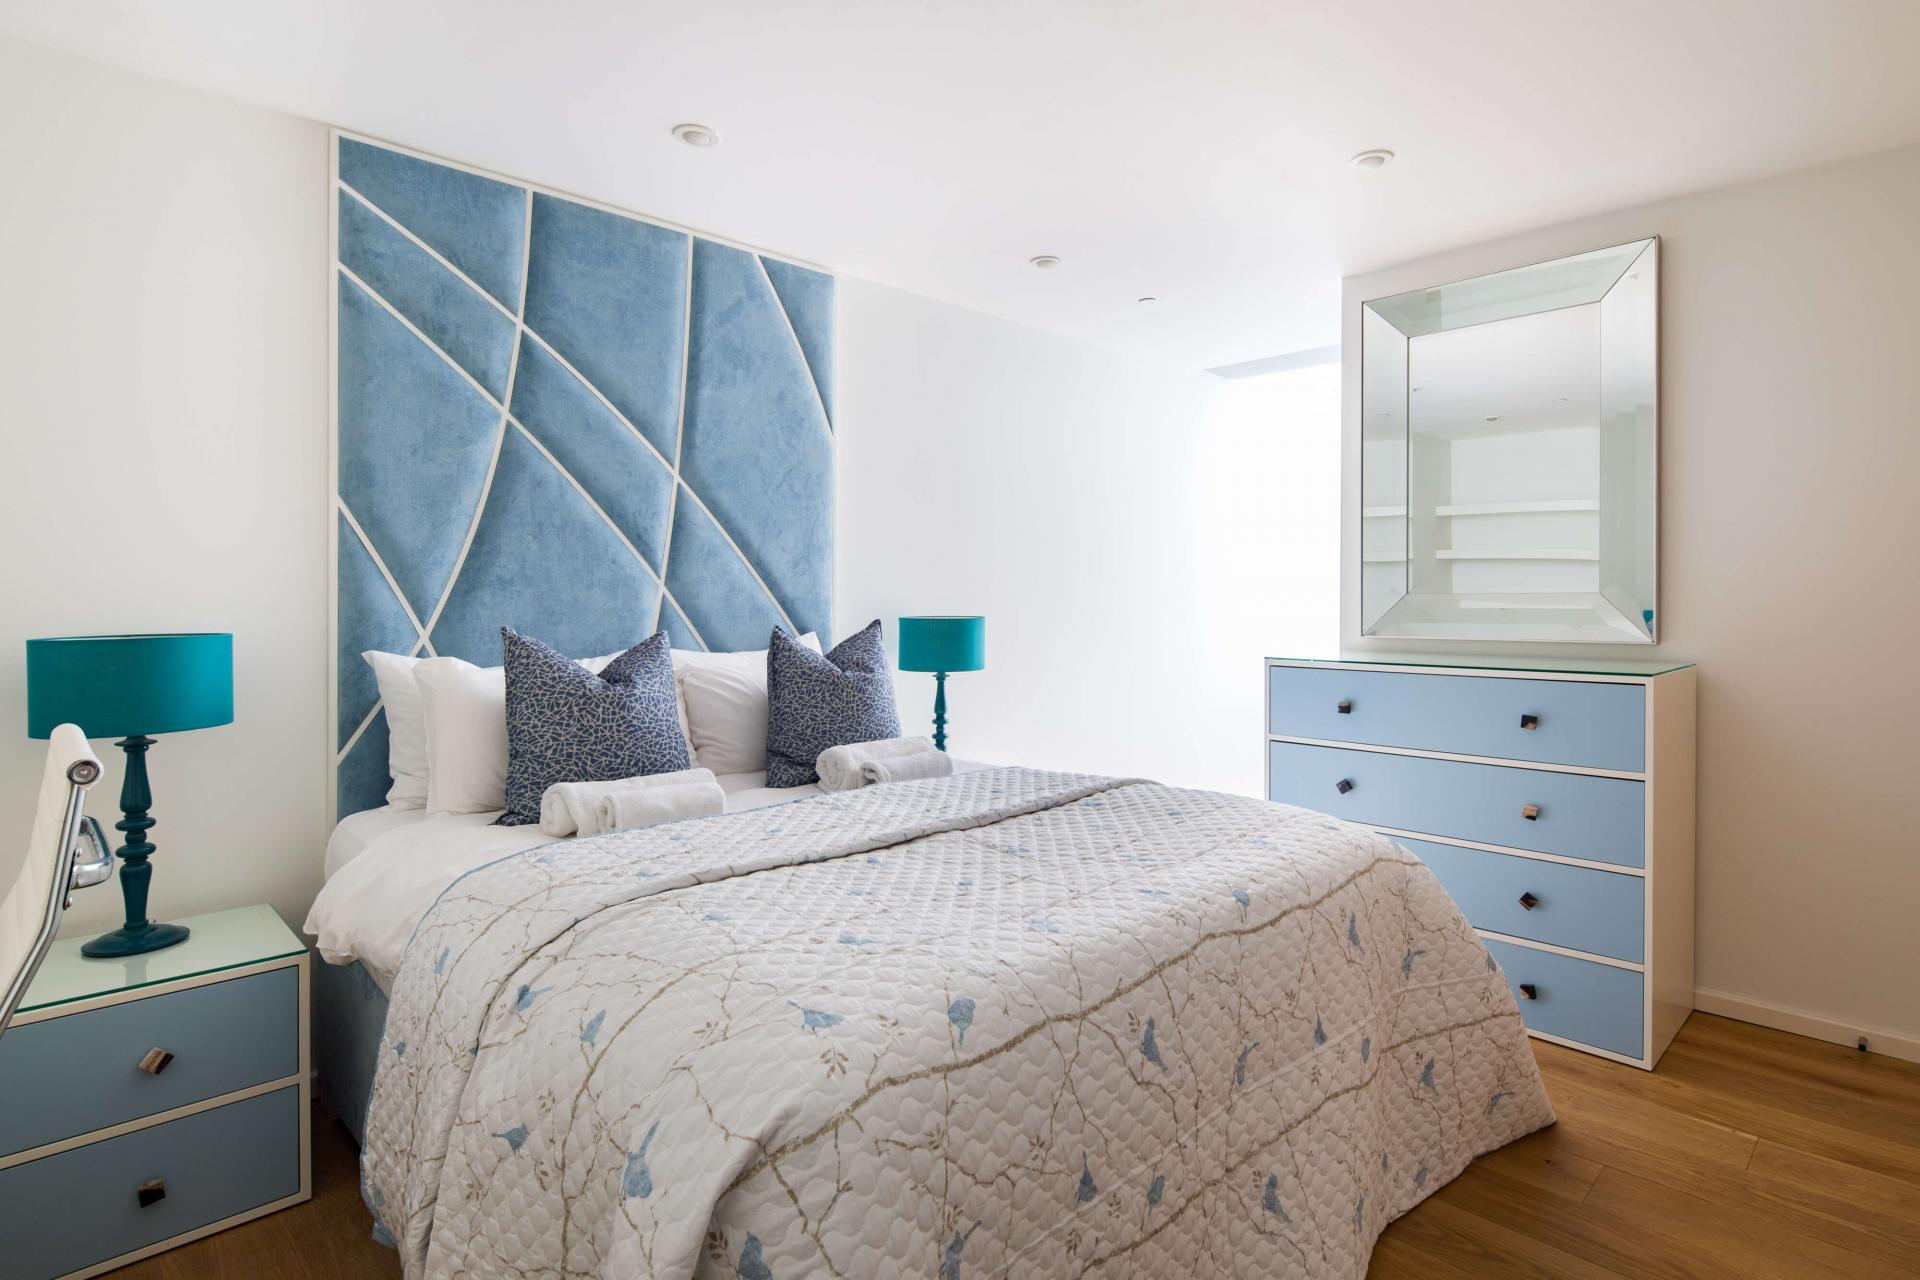 Bedroom at Meritas Court Apartments, Bayswater, London